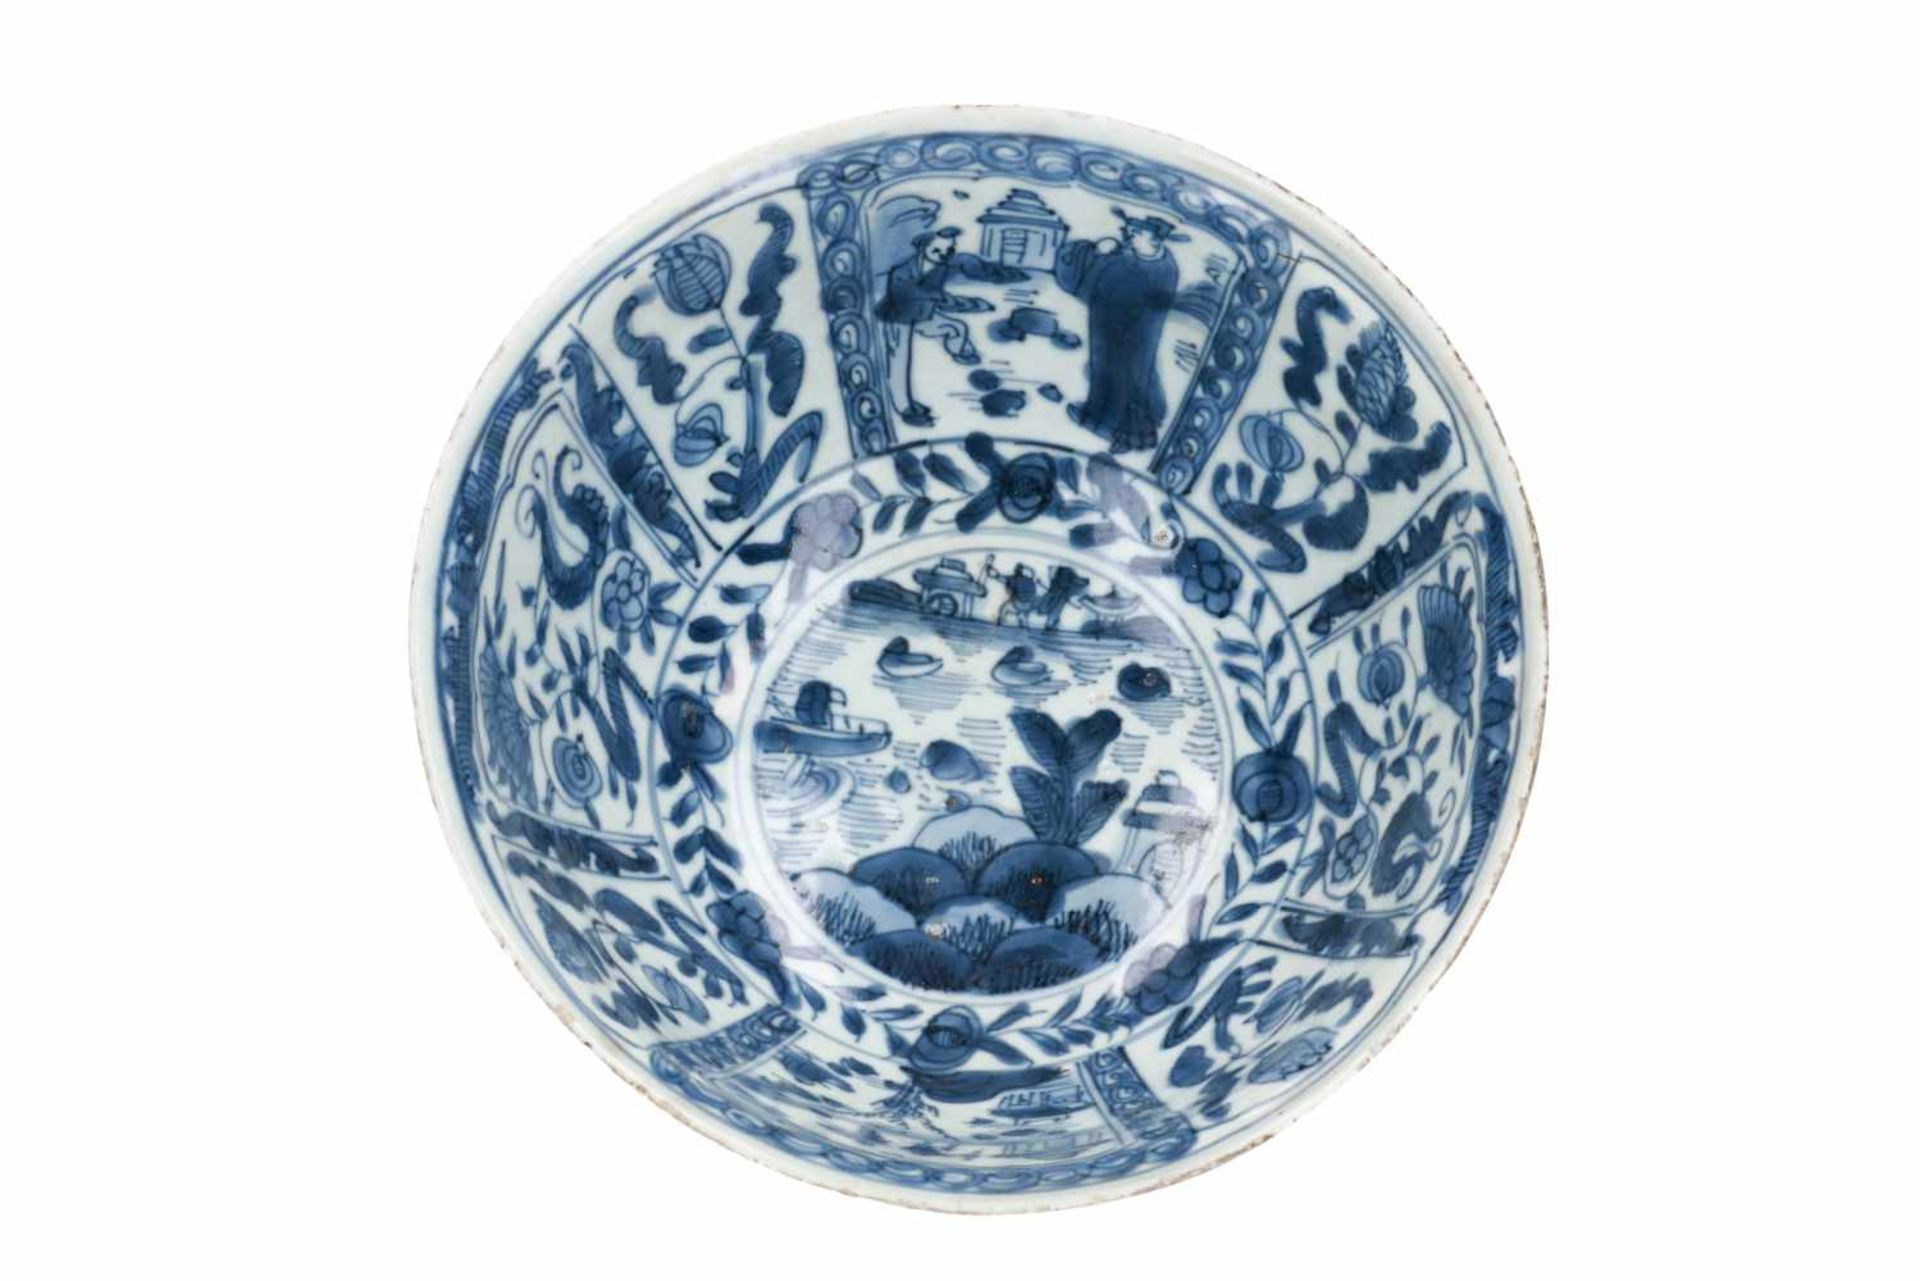 A blue and white porcelain bowl, decorated with figures, tulips and landscapes. Unmarked. China, - Bild 5 aus 6